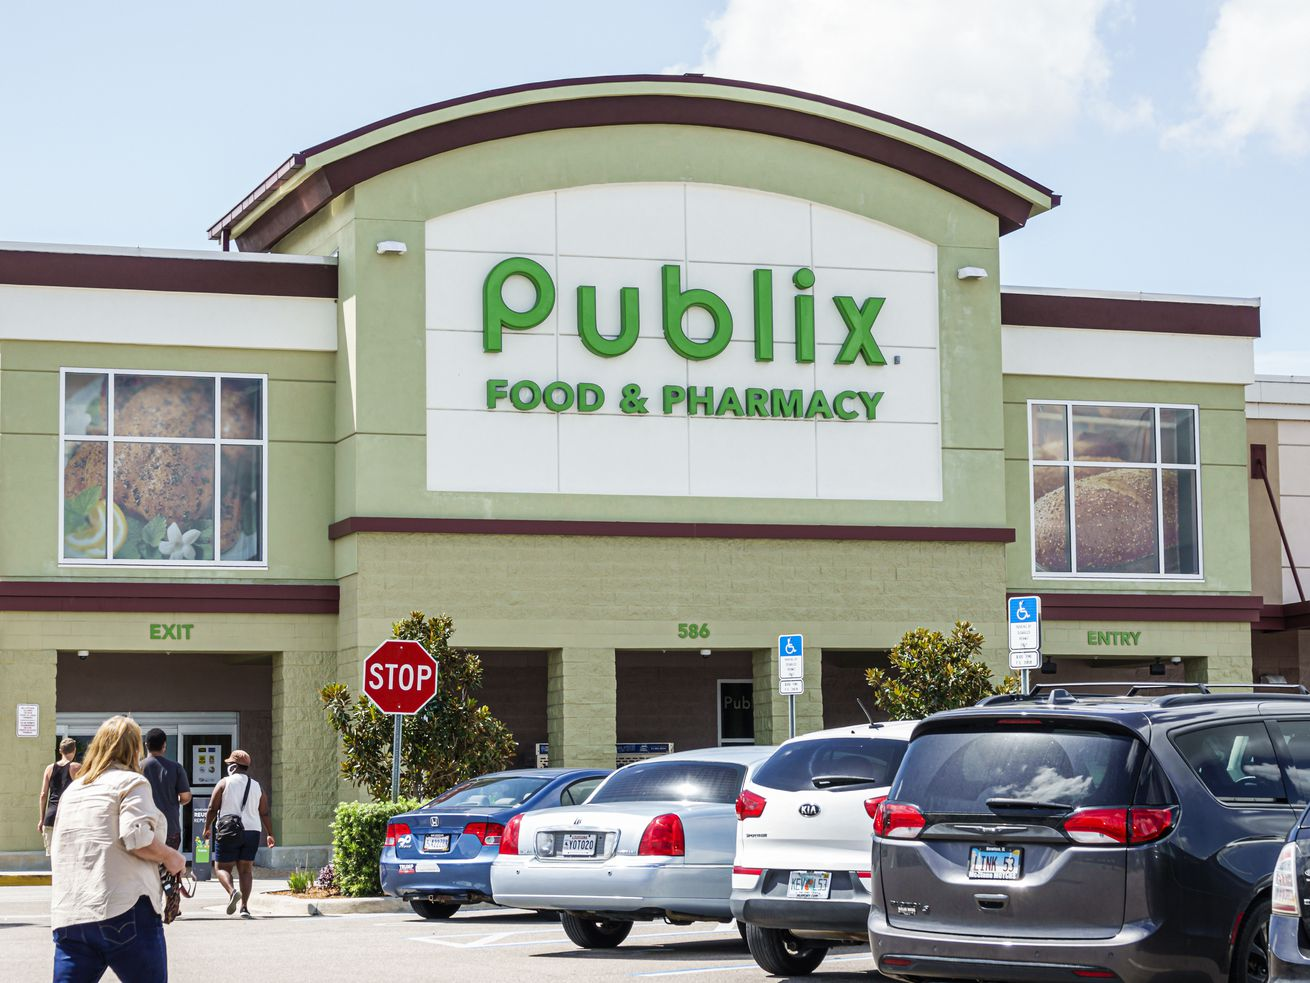 The exterior of a Publix supermarket in Florida, Lake Placid, with customers walking out of their cars and toward the store.